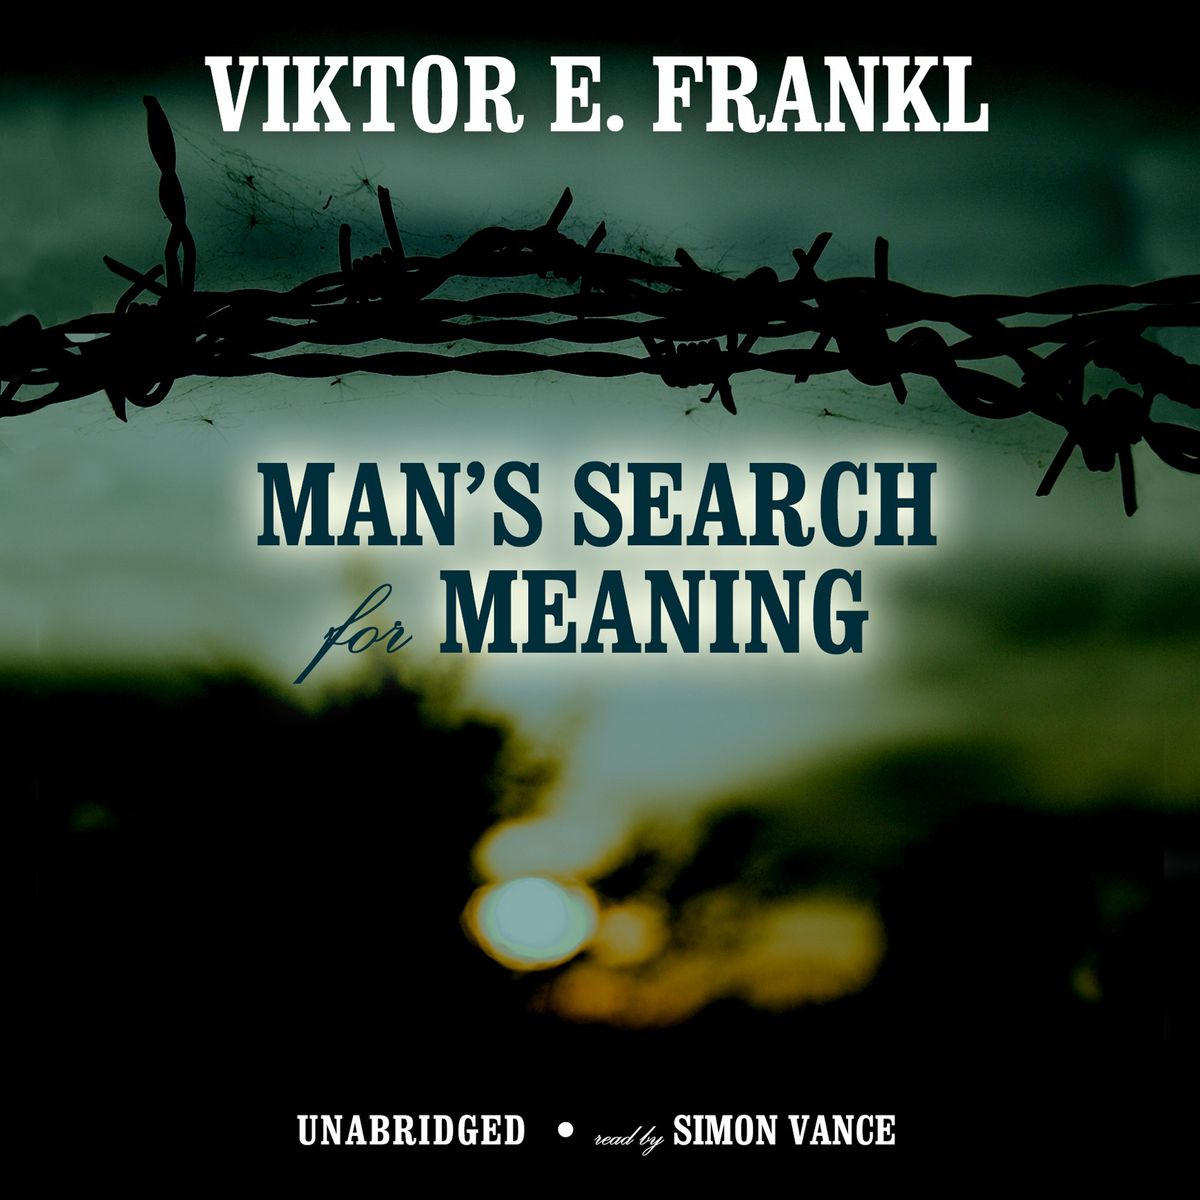 Cover image for Viktor E. Frankl's 'Man's Search for Meaning'